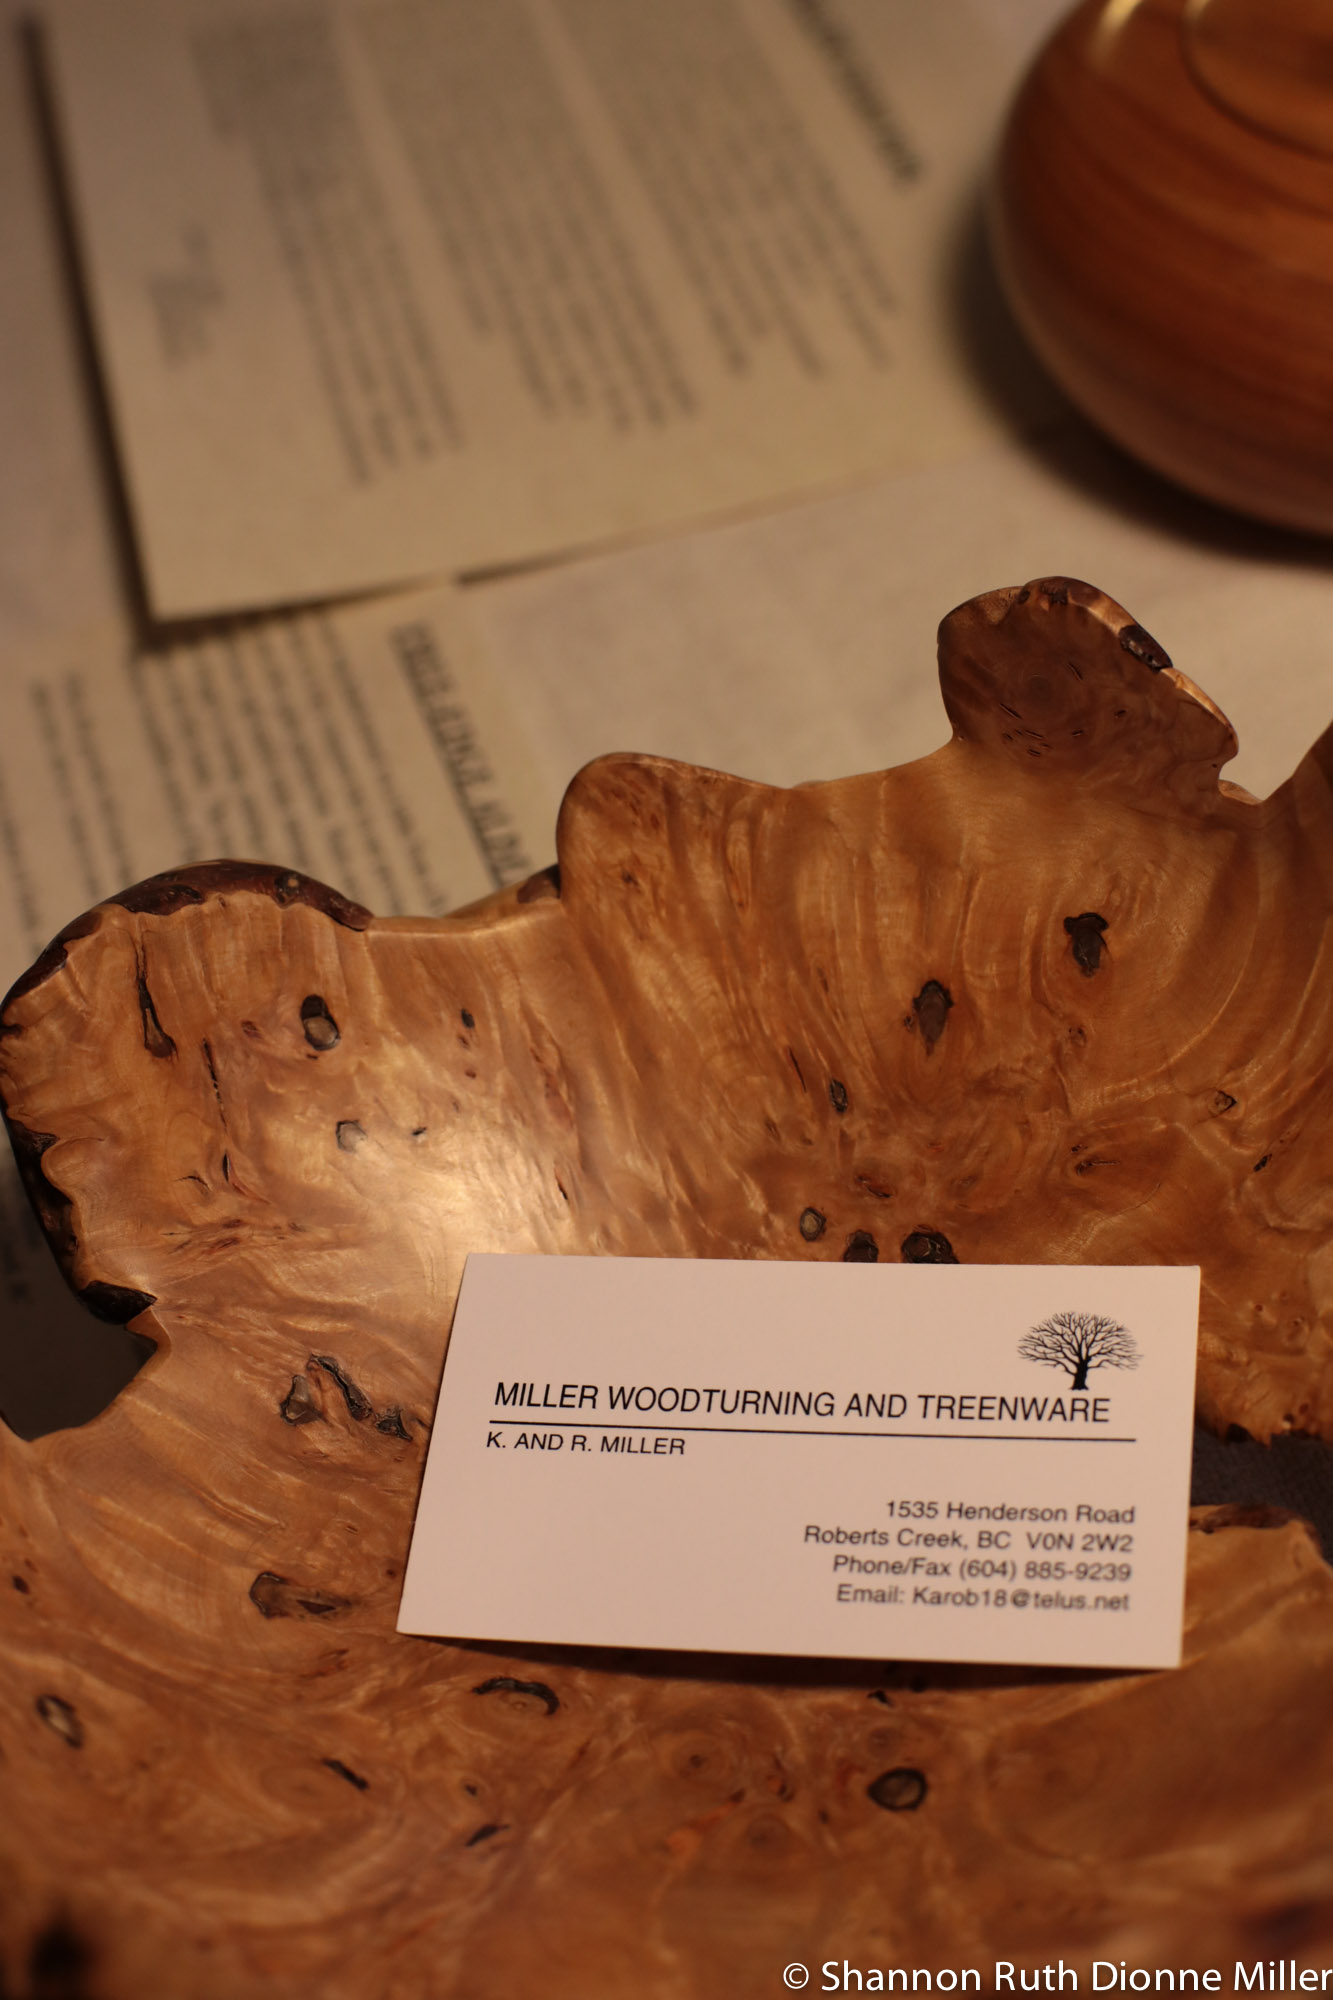 Miller Woodturning and Treenware.